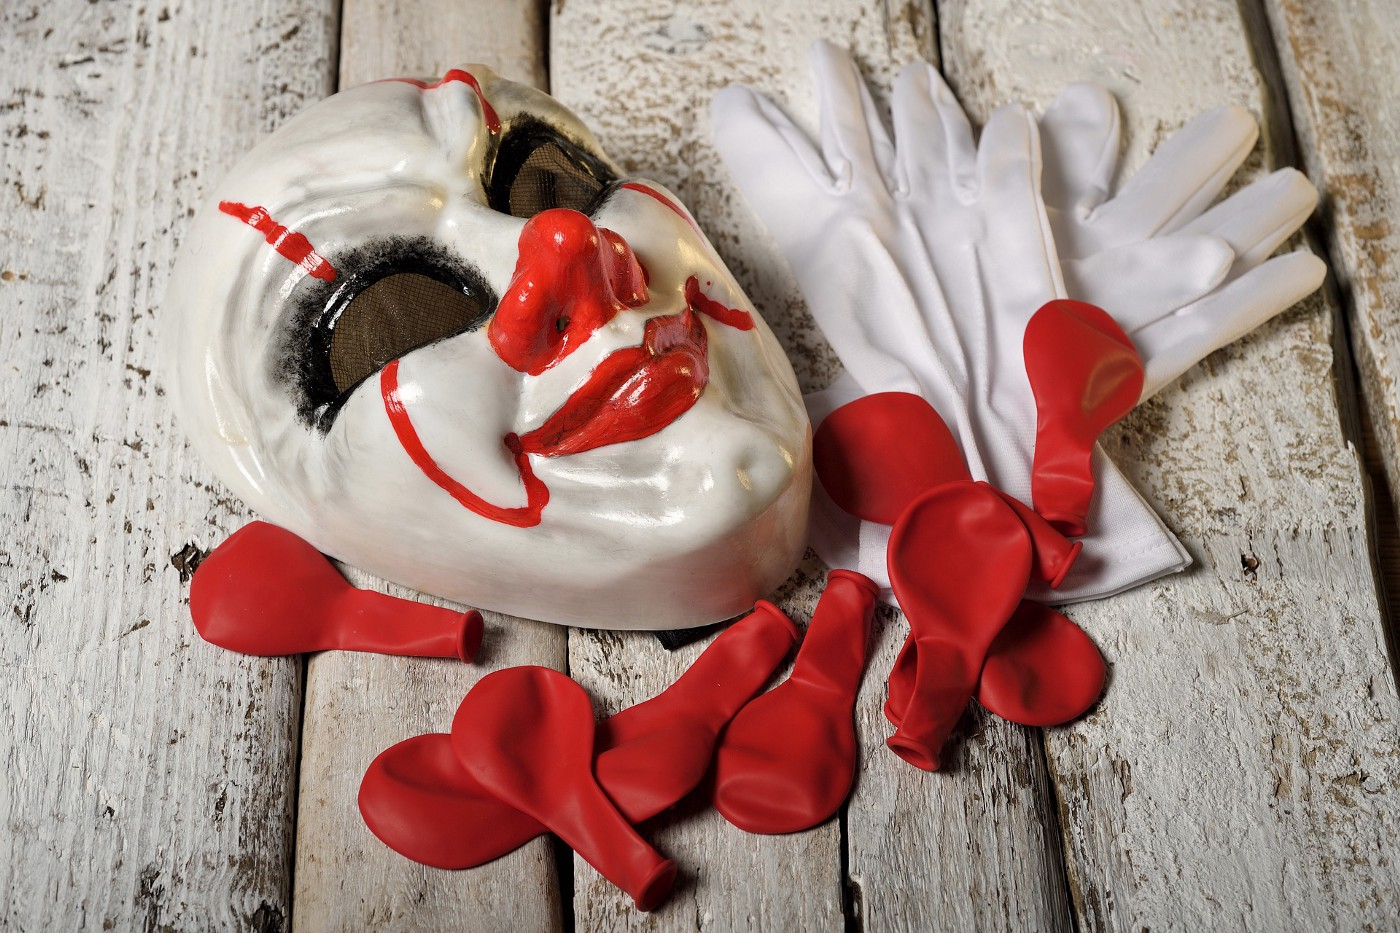 Clowns mask with white gloves and red balloons on wooden boards